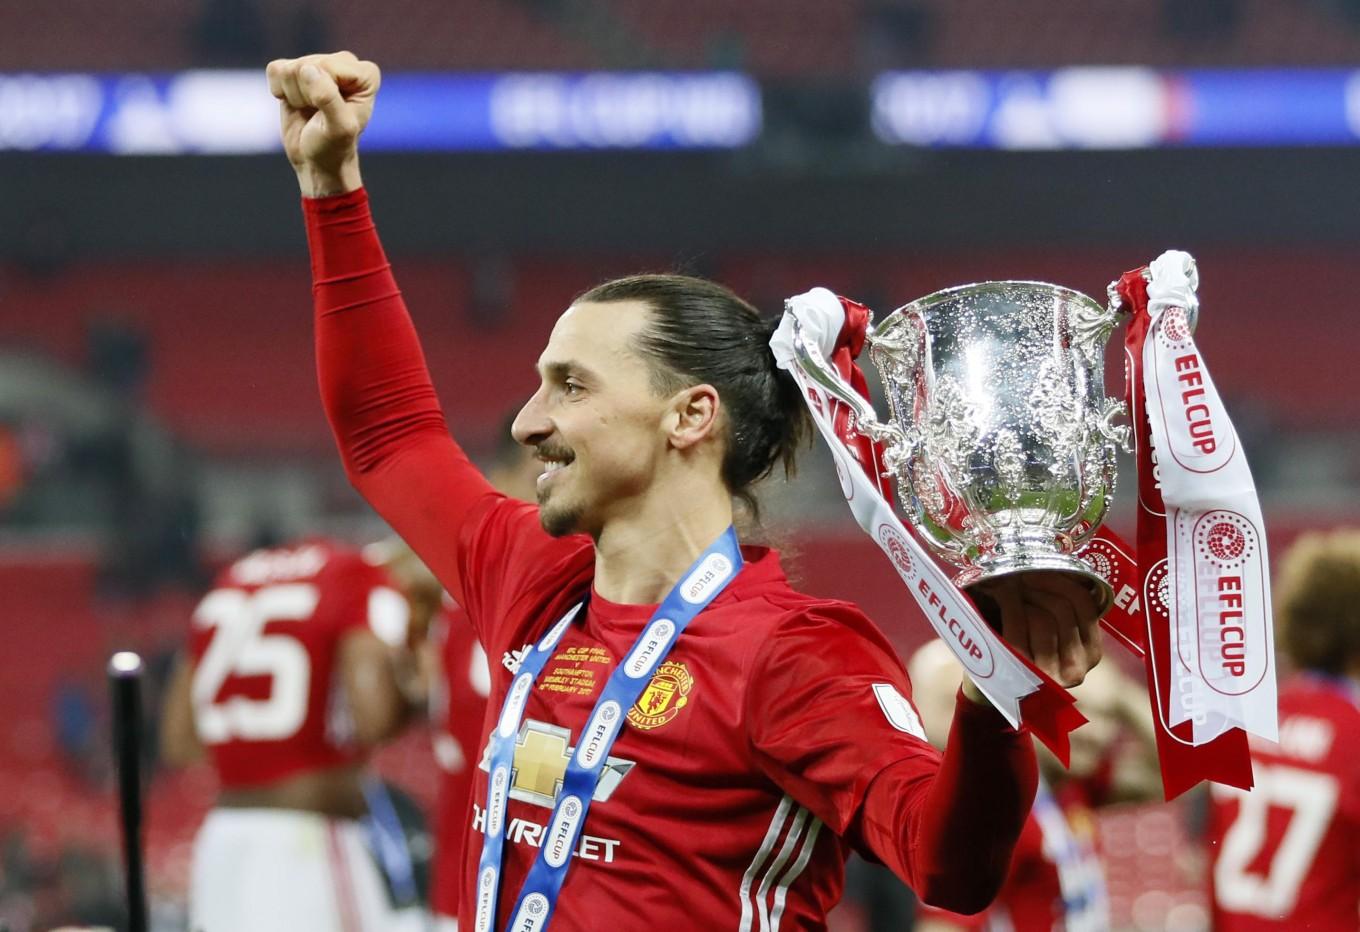 e07fb8b7ed4 Zlatan Ibrahimovic s double wins League Cup for Man United United s Zlatan  Ibrahimovic celebrate with the trophy after ...